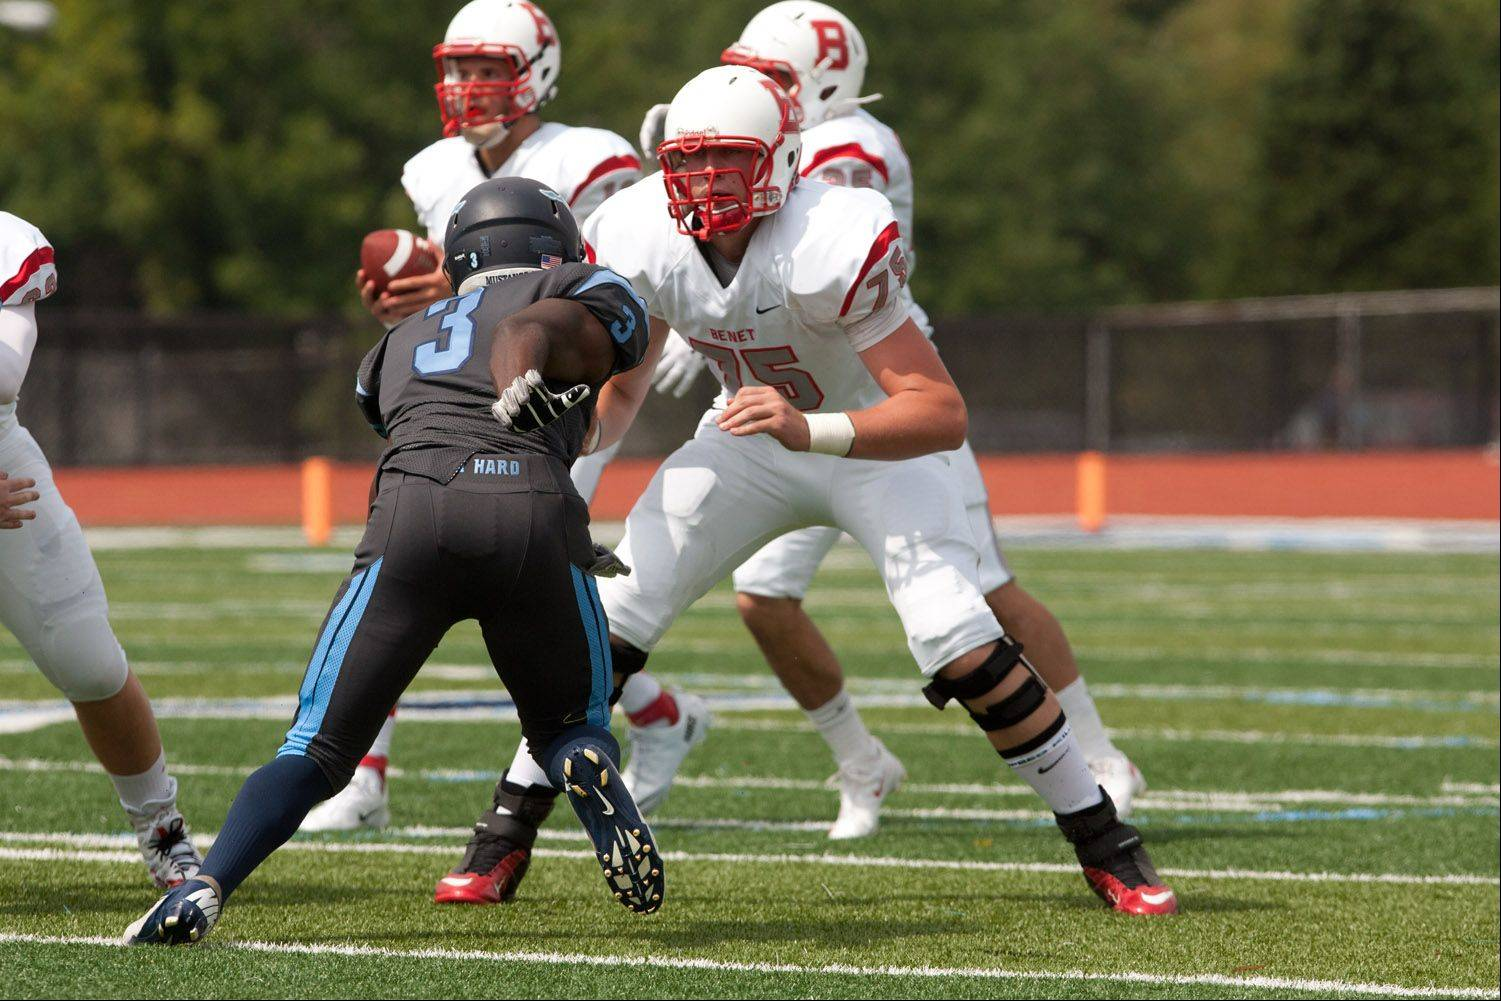 Benet Academy's Sean O'Mara defends against Downers Grove South's Idony Owens (3) during Saturday's season opener.